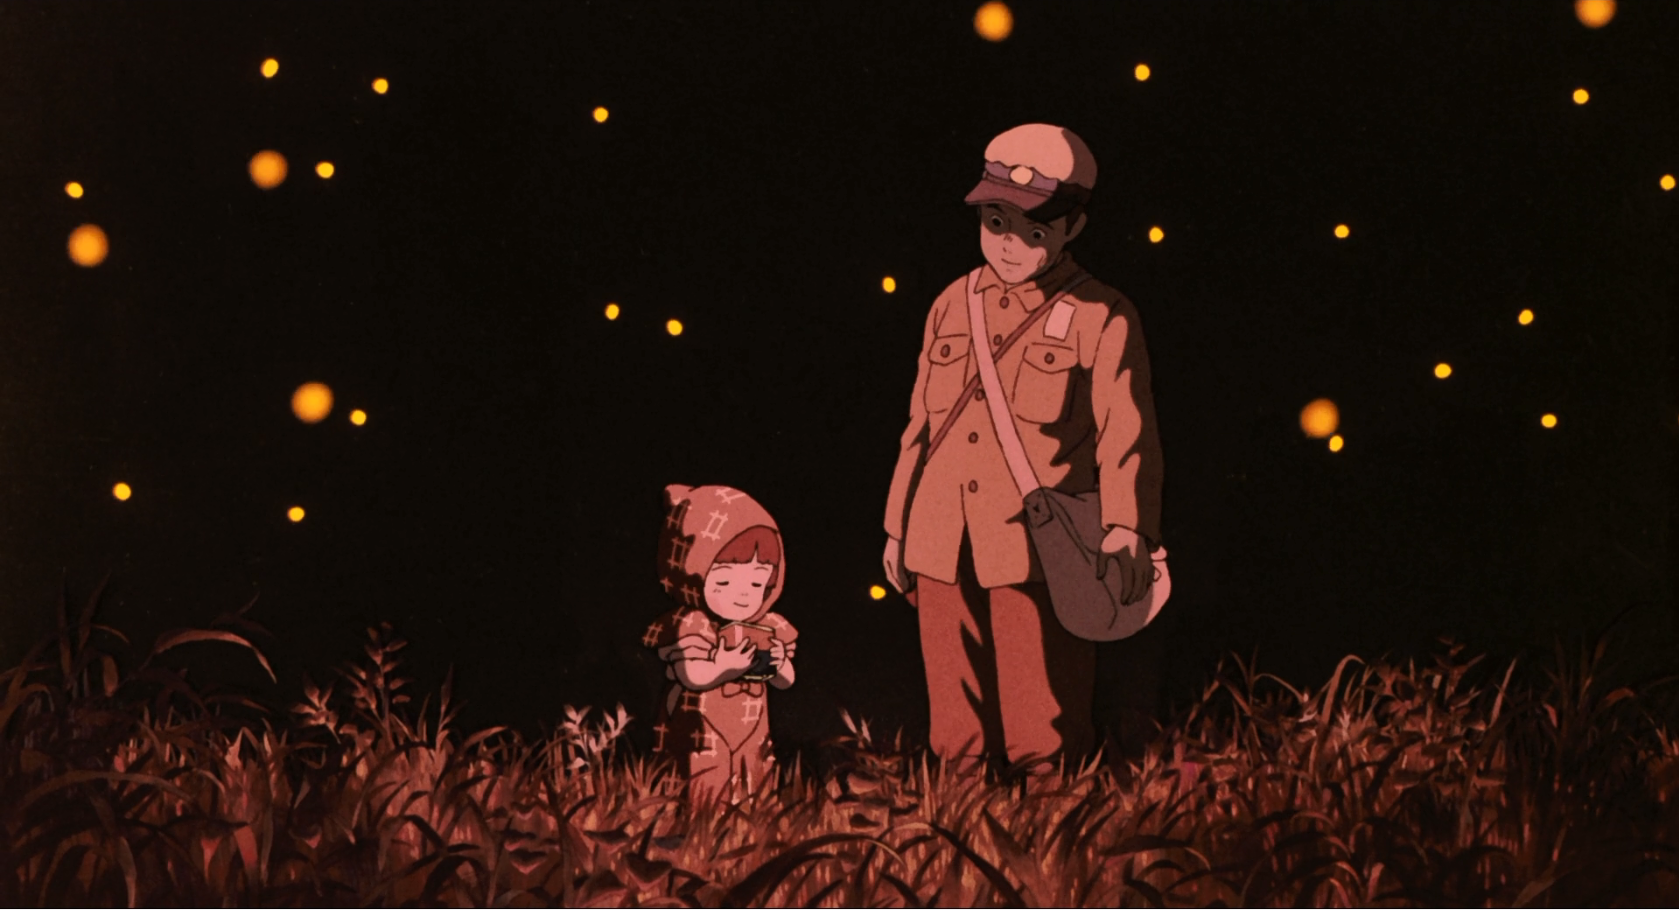 42. Grave of the Fireflies